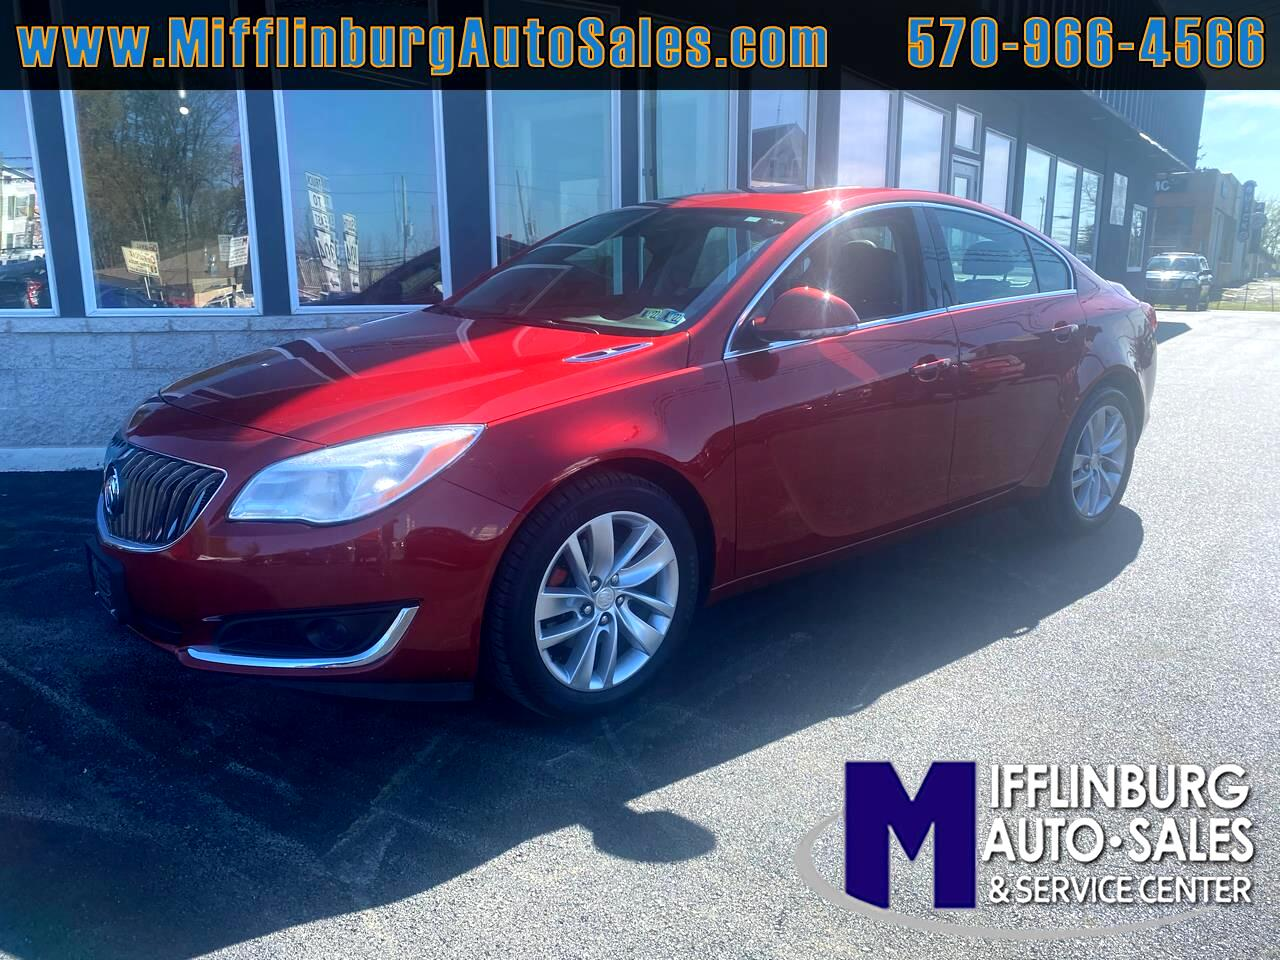 Buick Regal 4dr Sdn FWD 2014